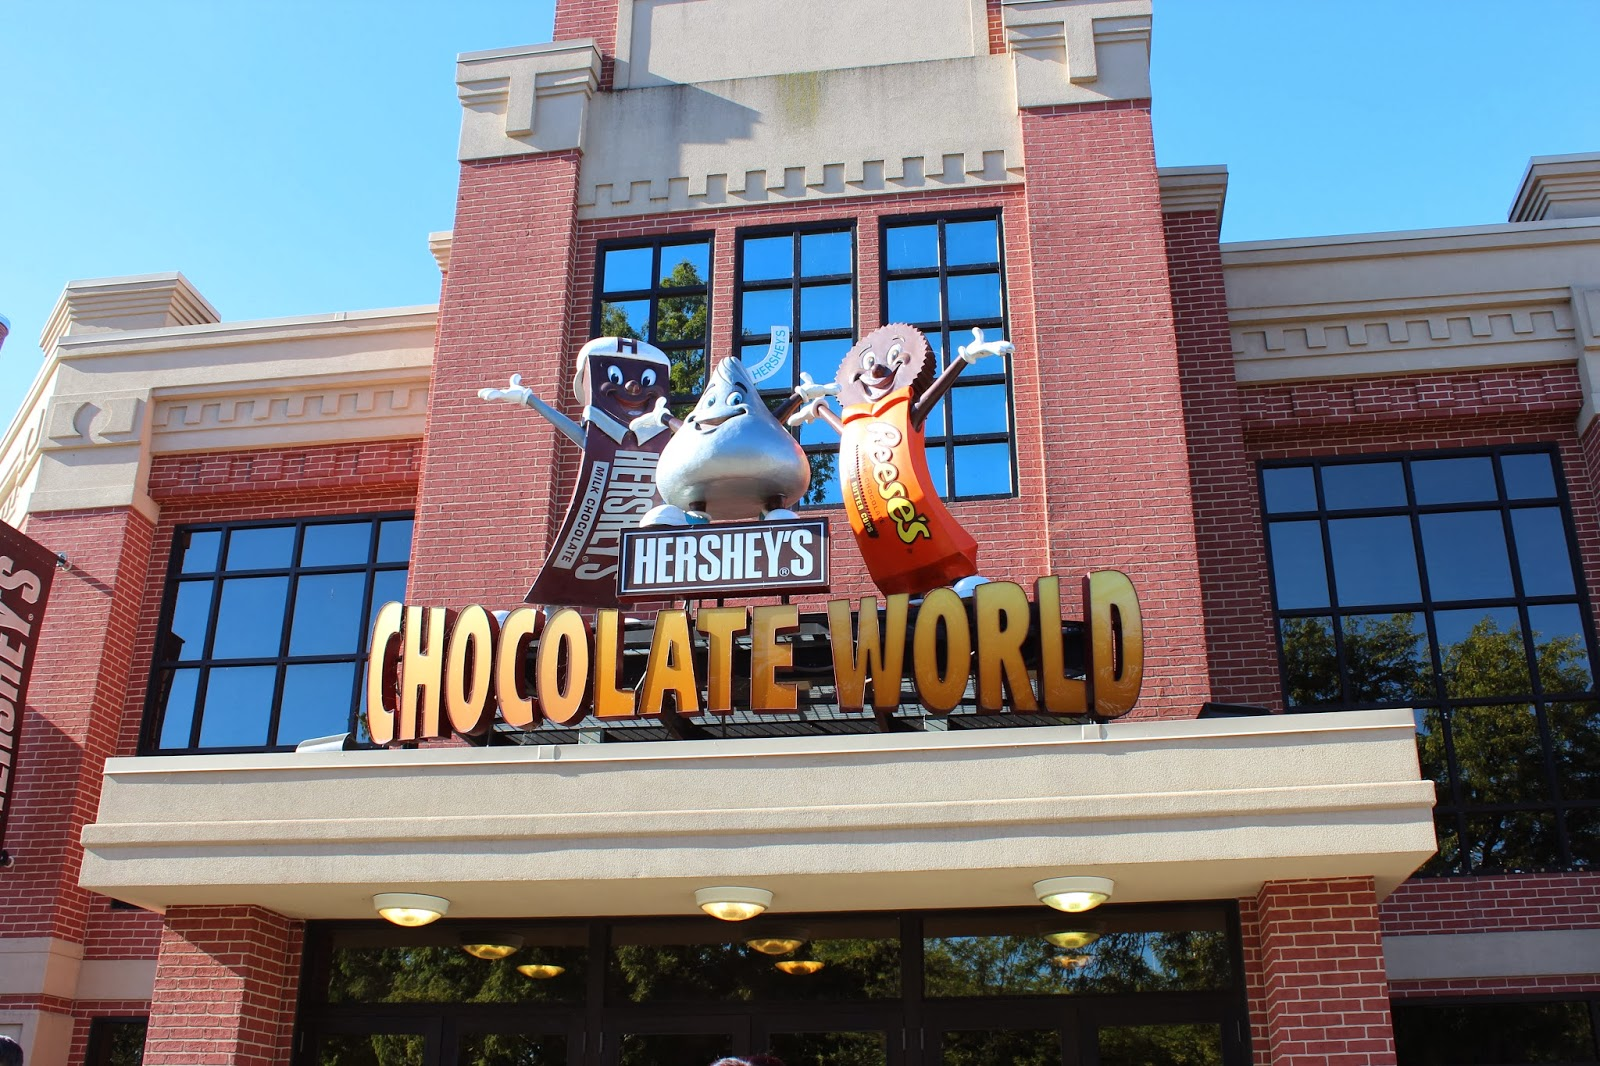 Food is our Religion: Hershey's Chocolate World and